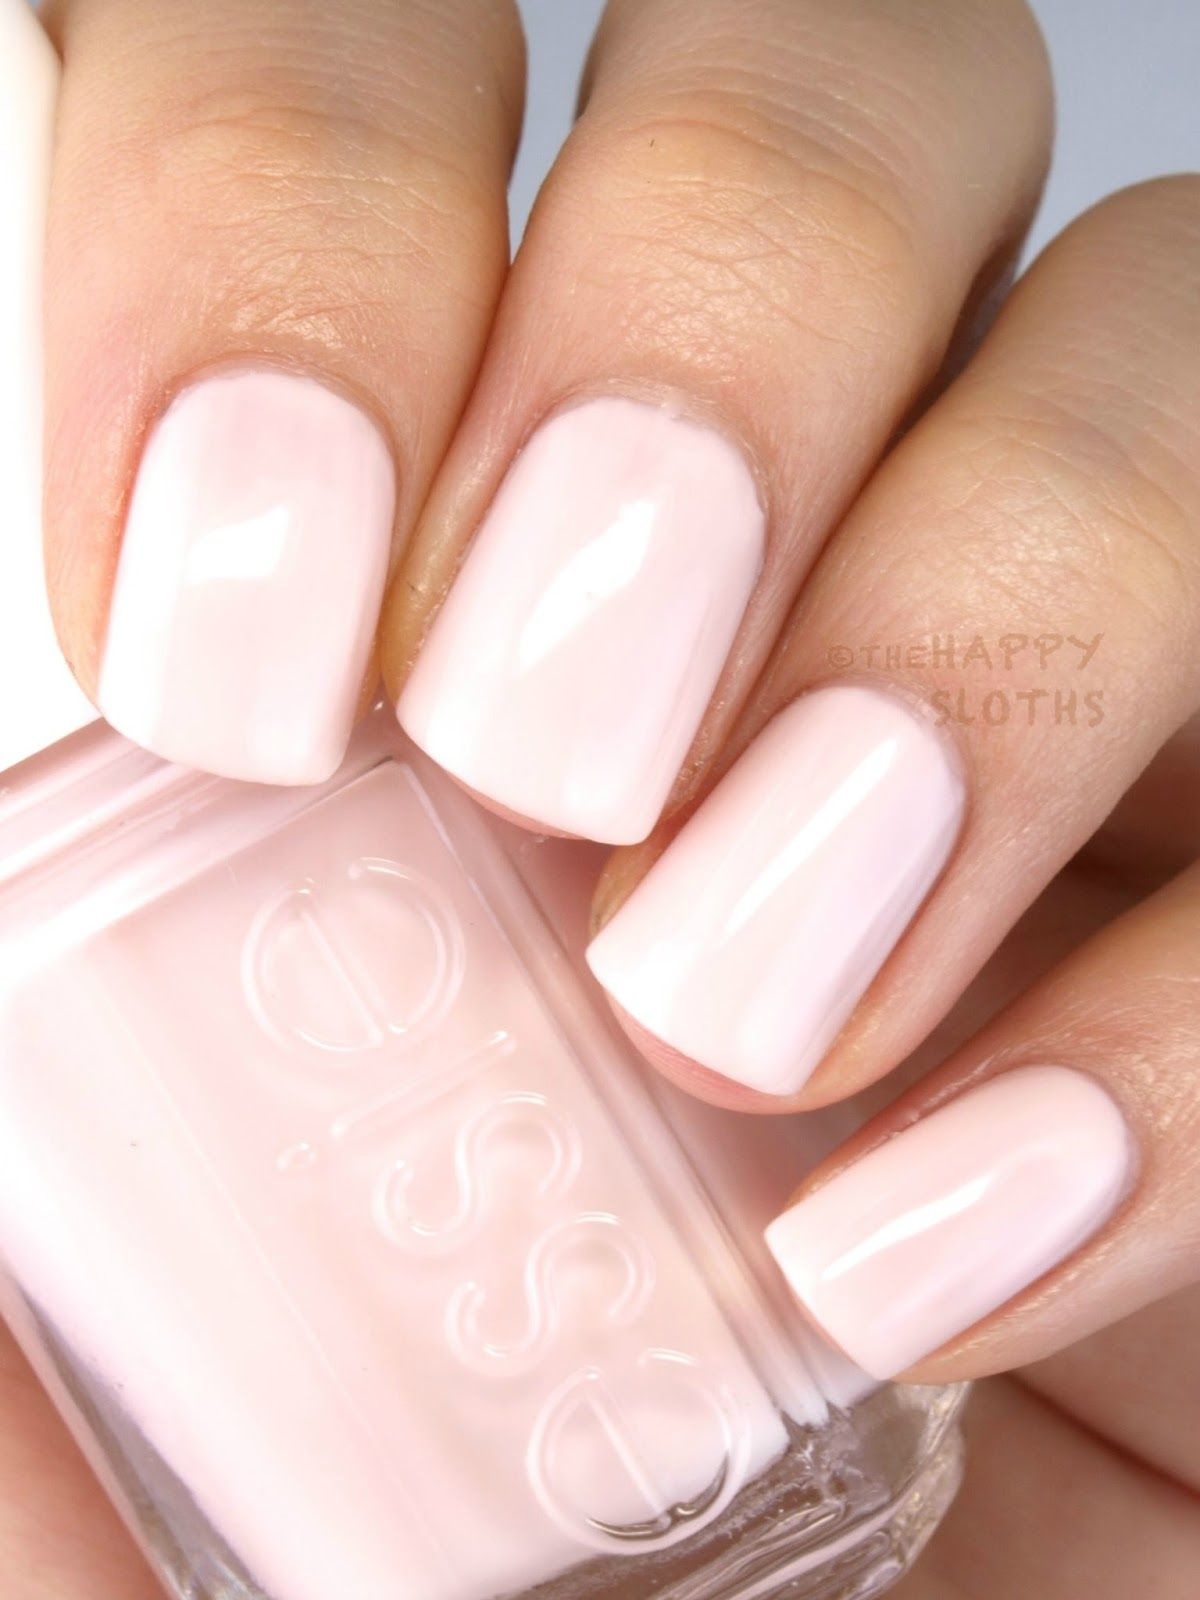 Essie Bridal 2015 Collection: Review and Swatches | Pink nails ...